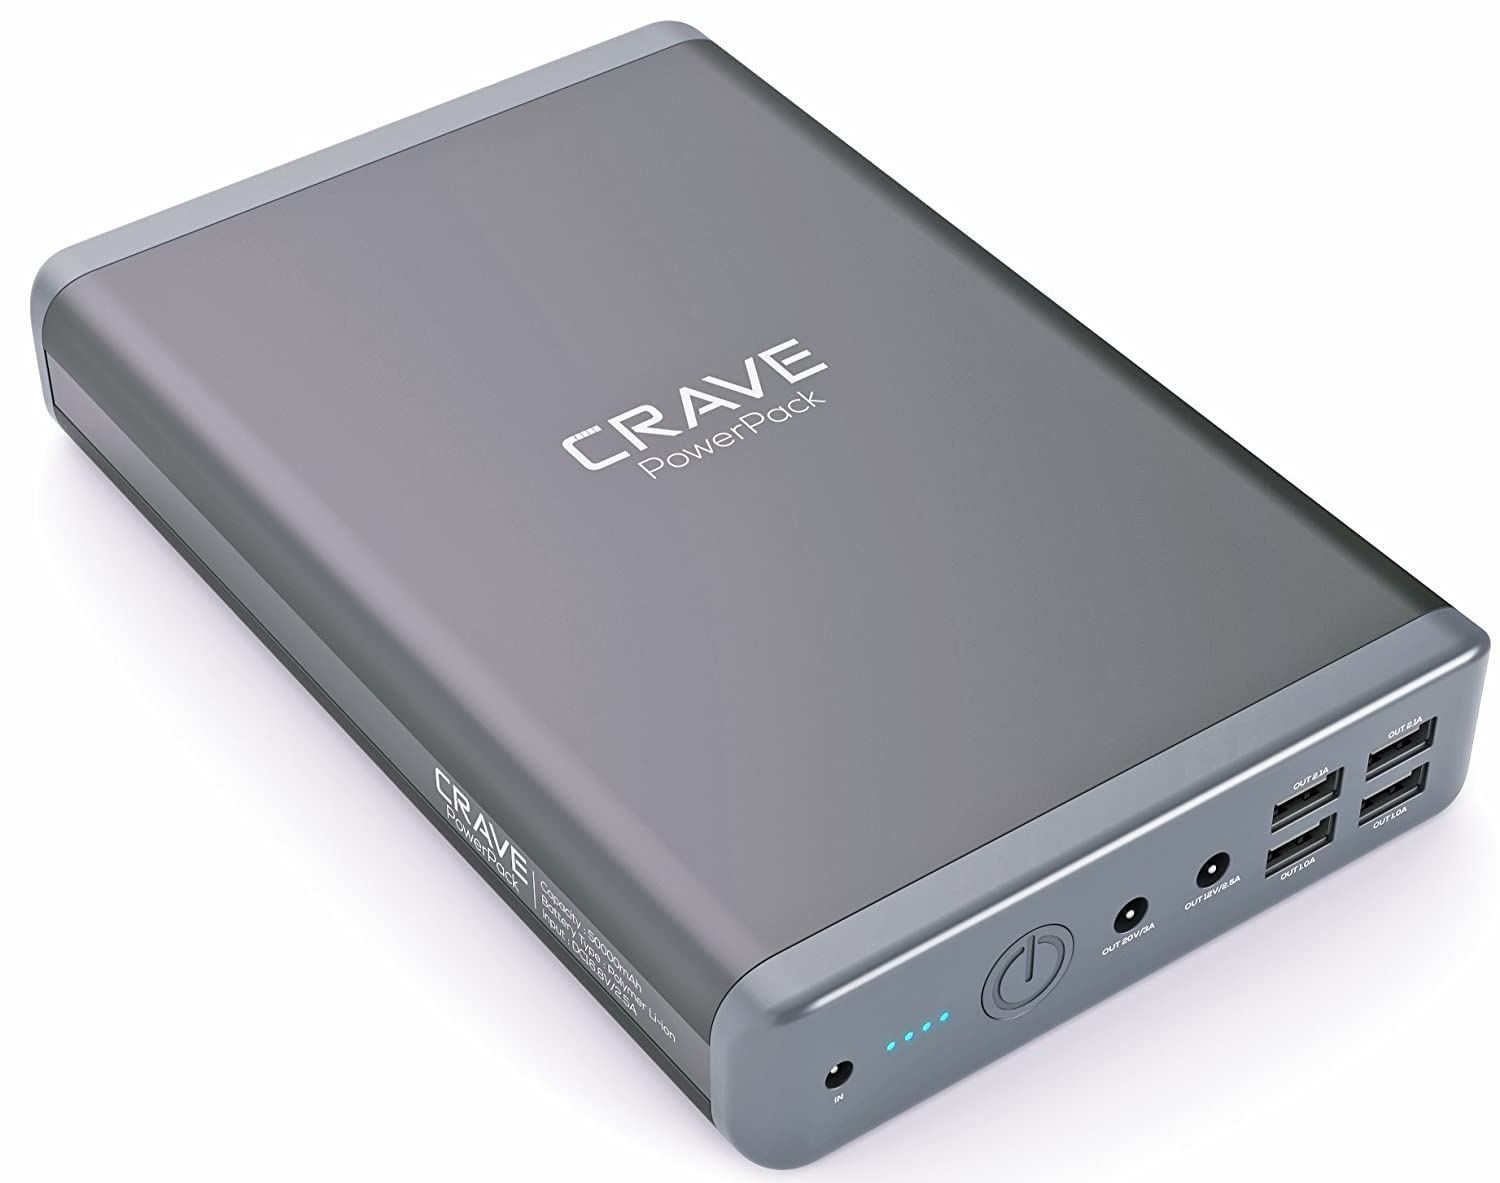 Crave PowerPack CRVPP101 Power Bank Black Friday Deals